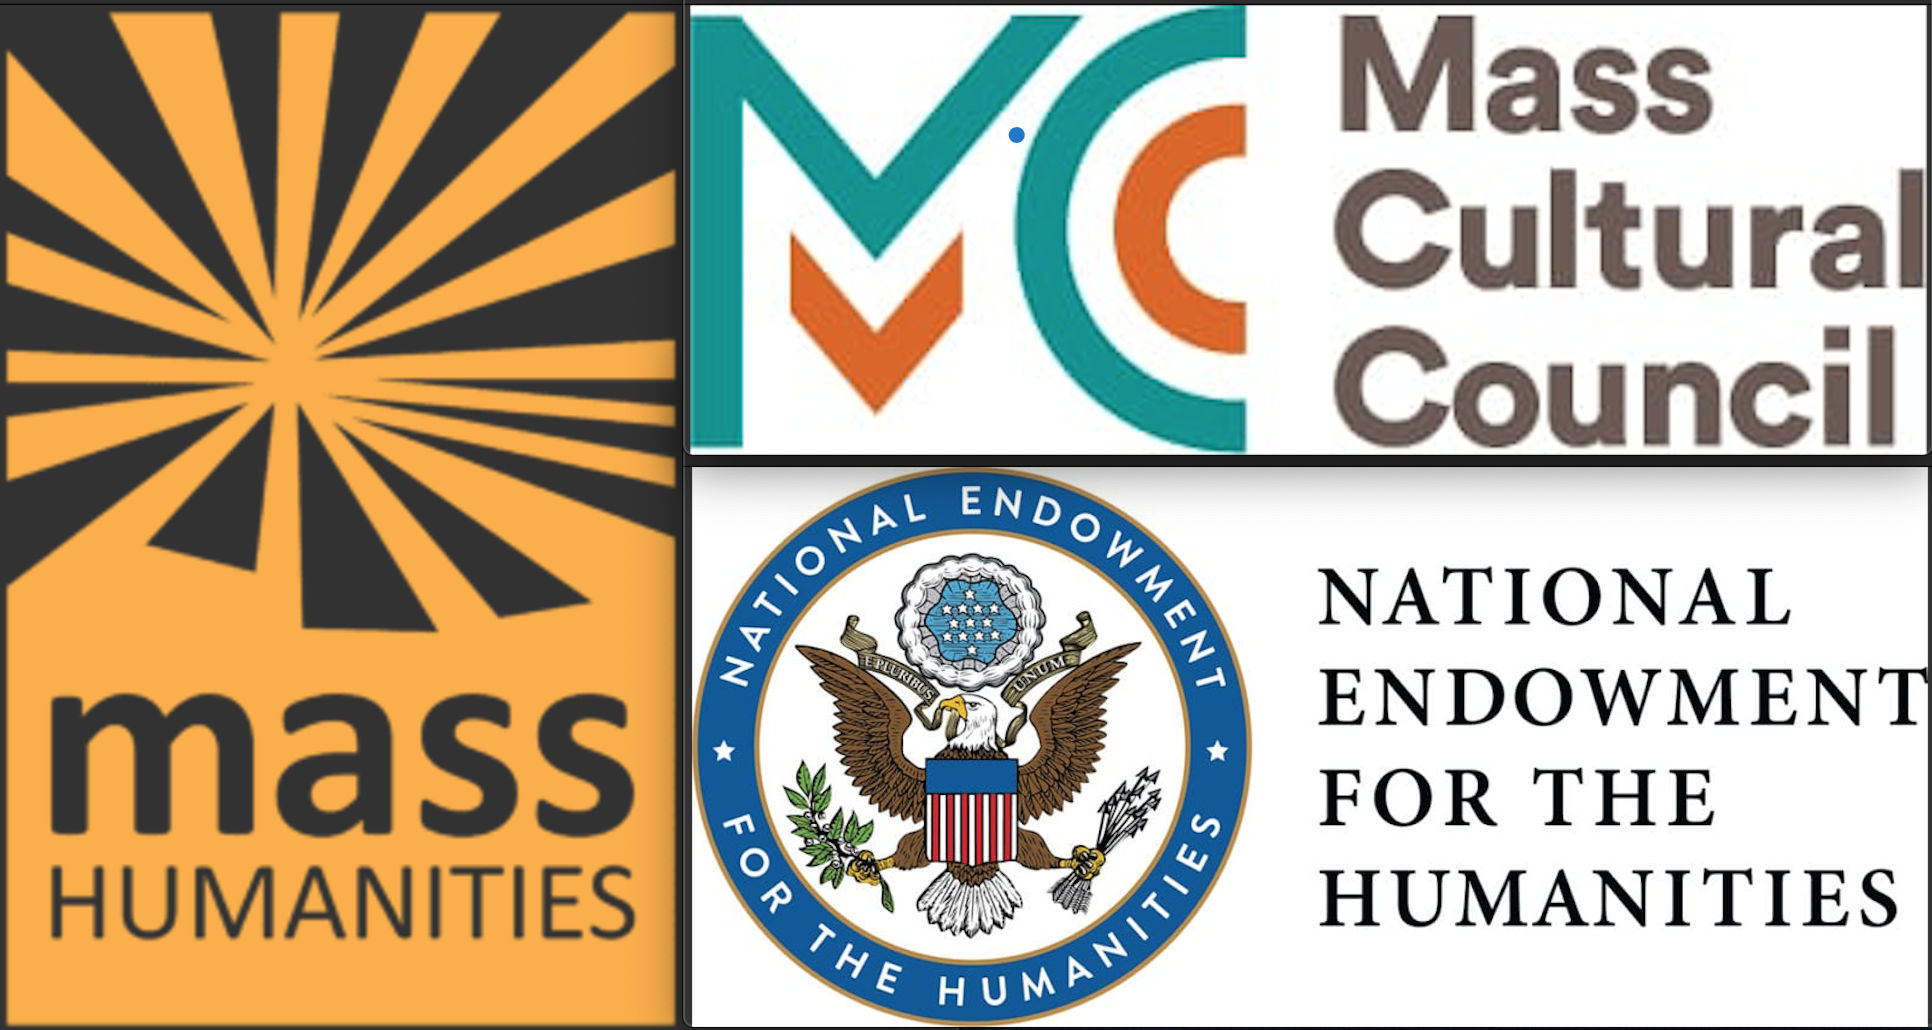 Logos Mass Humanities, National Endowment for the Humanities, Mass Cultural Council